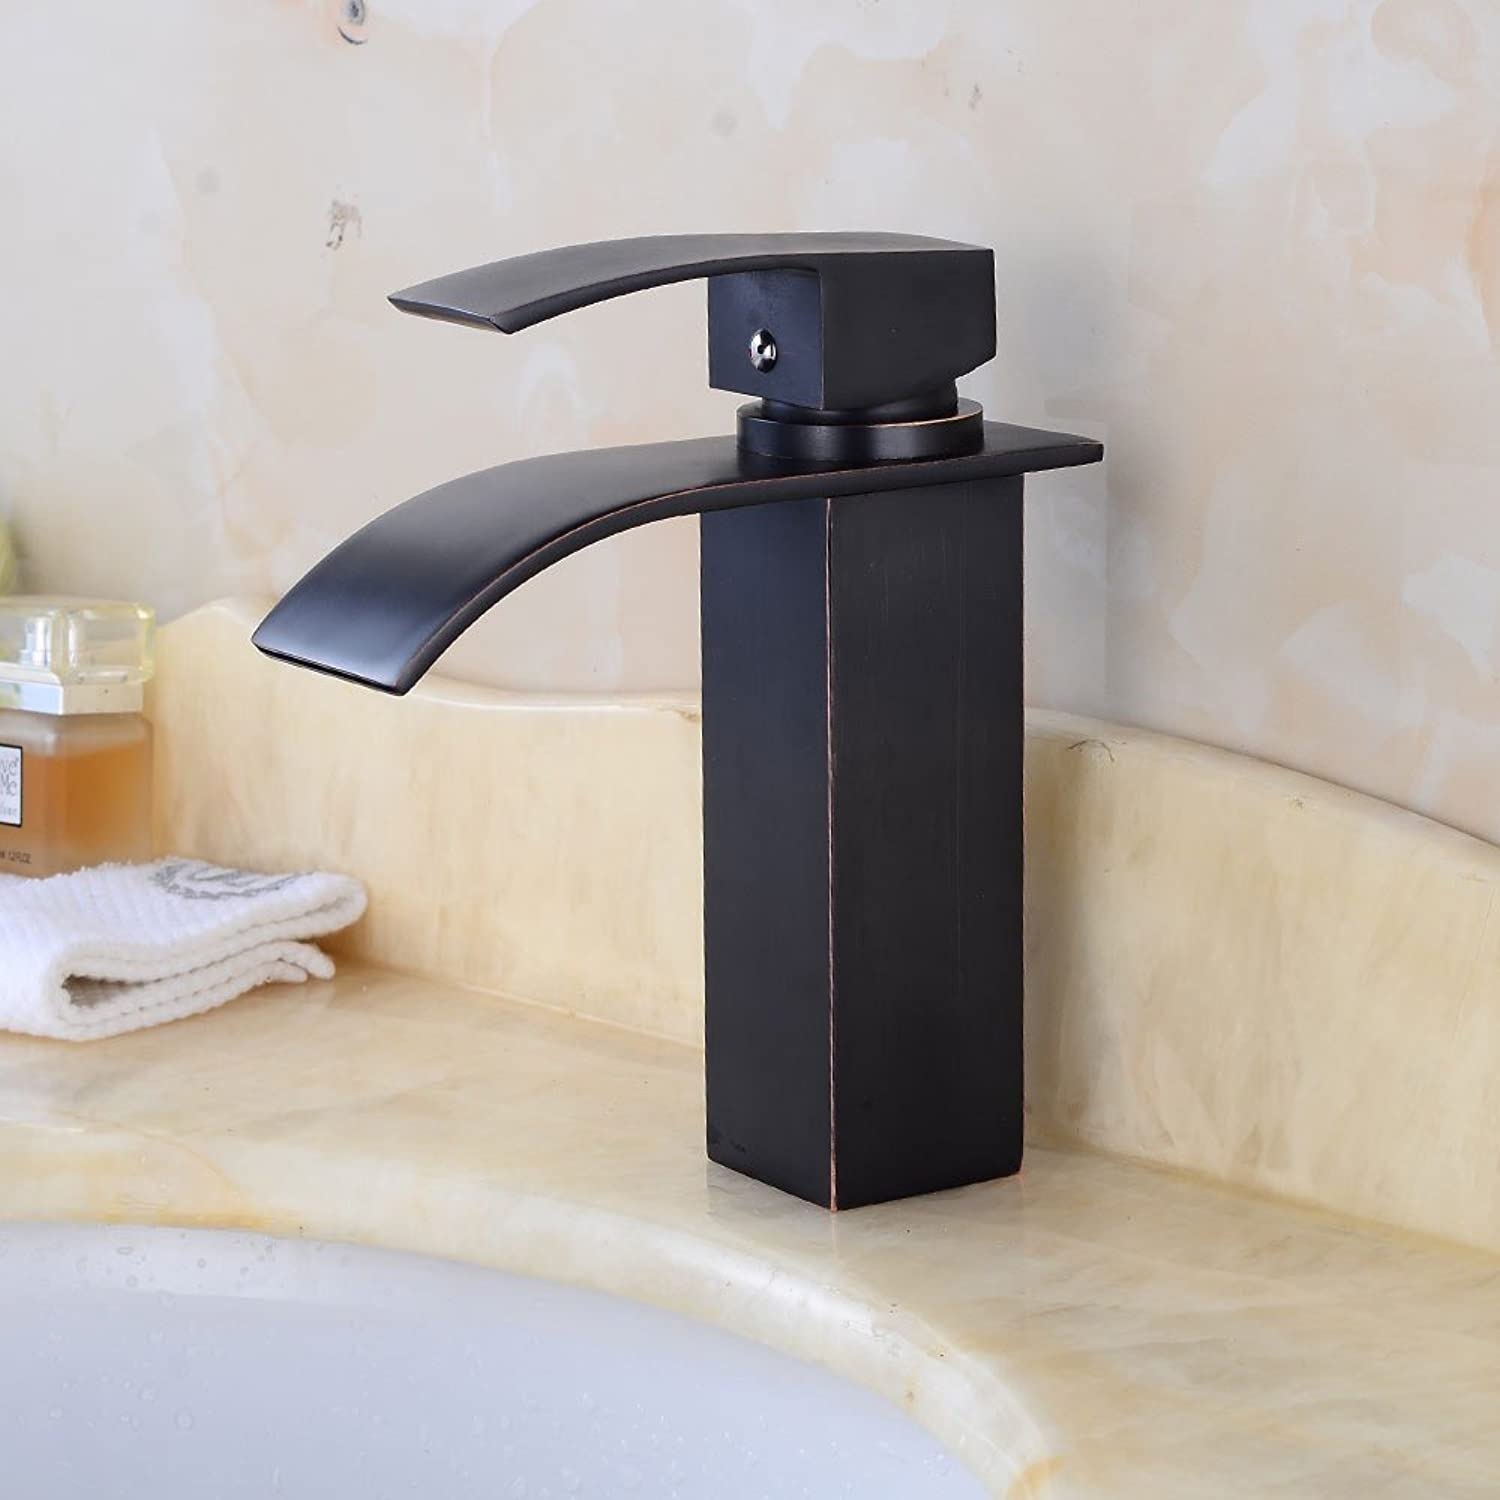 Rmckuva Bathroom Sink Taps Bathroom Retro Waterfall Effect Brass Mixer Black Curved Mouth